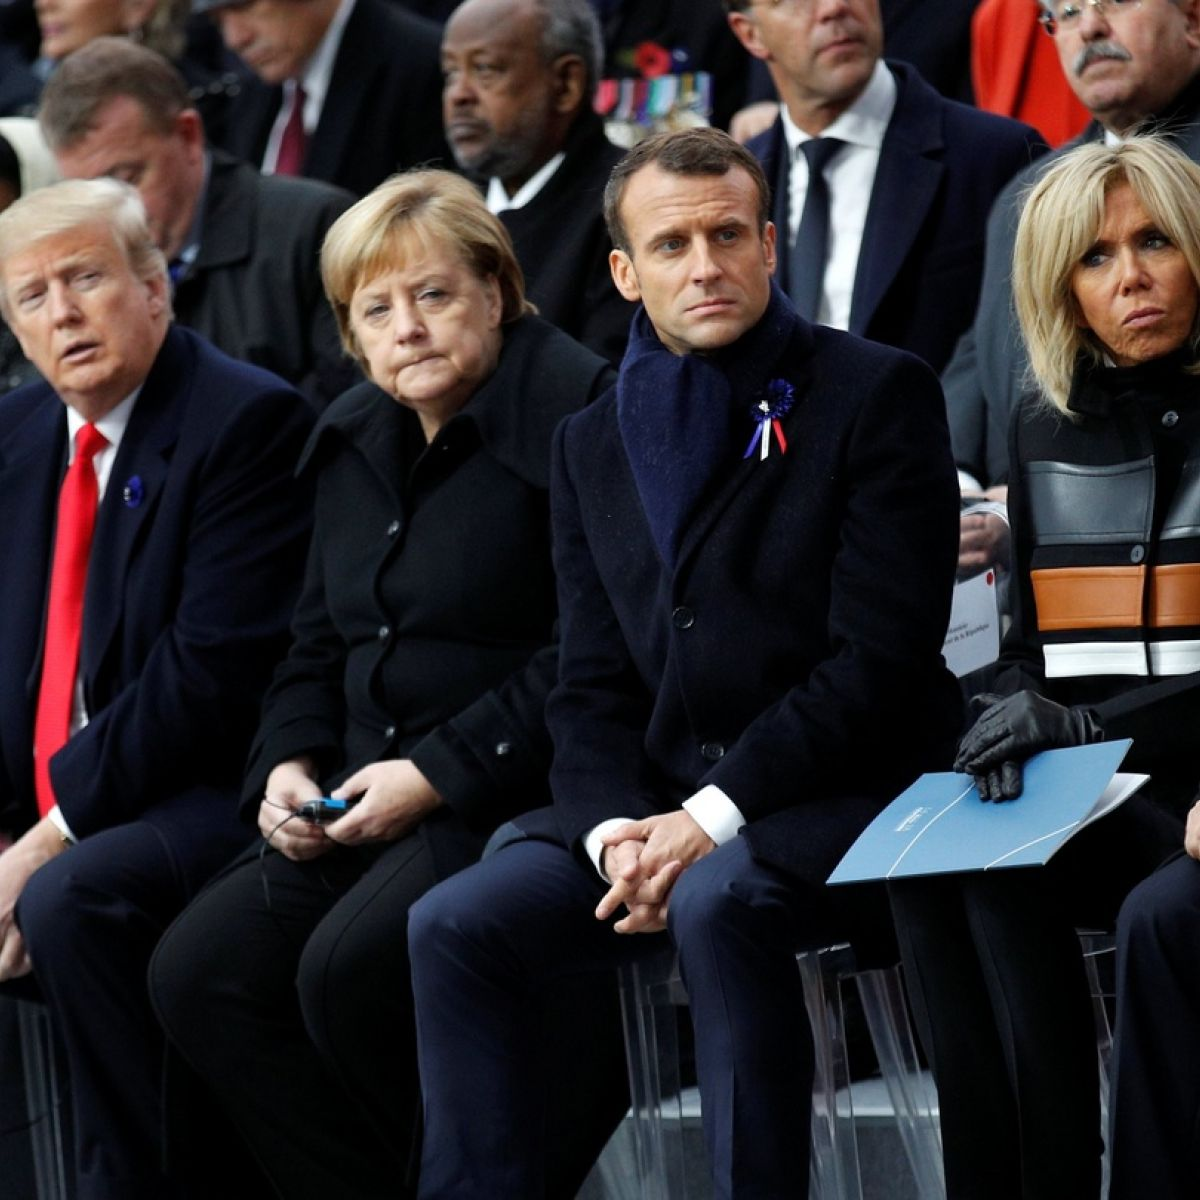 Macron warns about dangers of nationalism at Armistice ceremony